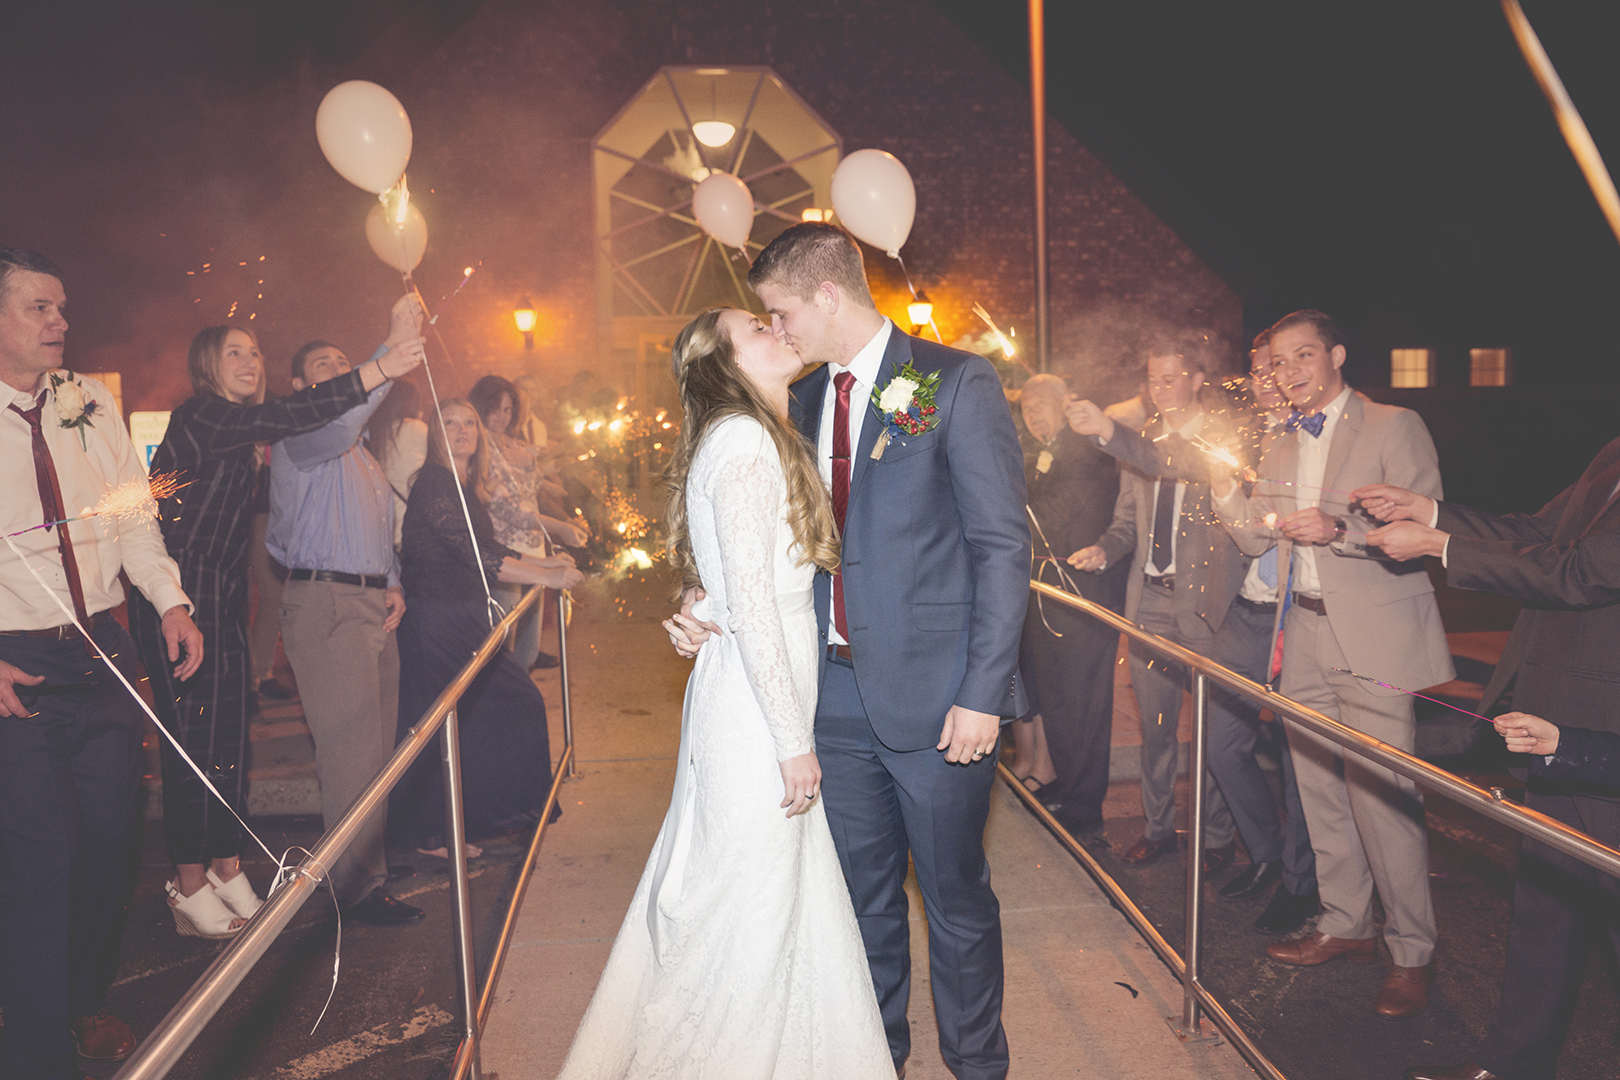 Wedding Grand Exit Sparklers Kiss